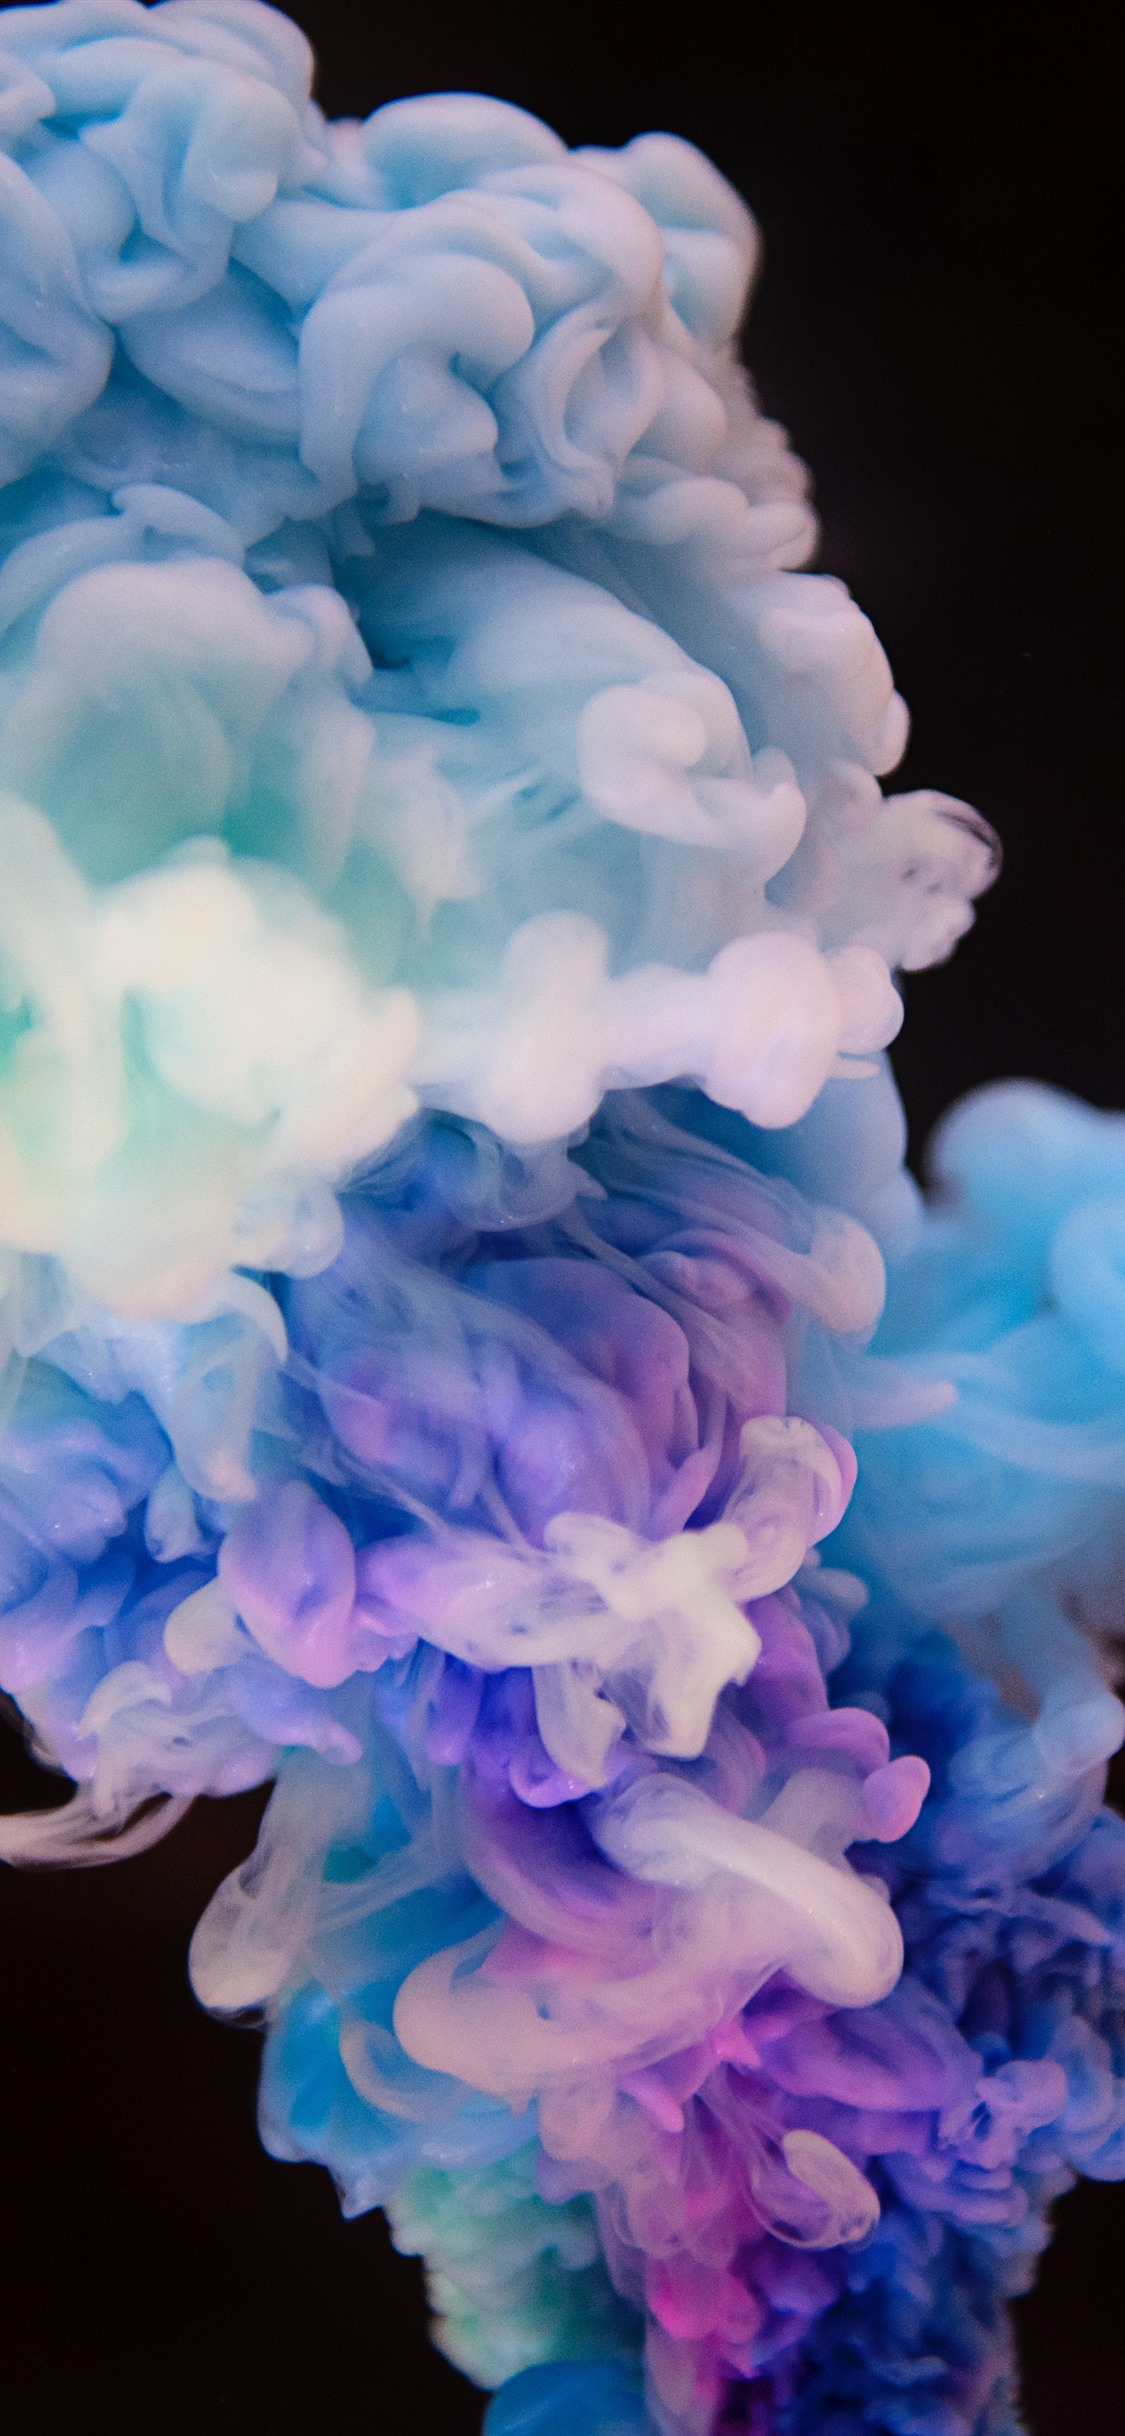 Colorful Smoke Black Background Abstract Picture 1242x2688 Iphone 11 Pro Xs Max Wallpaper Background Picture Image